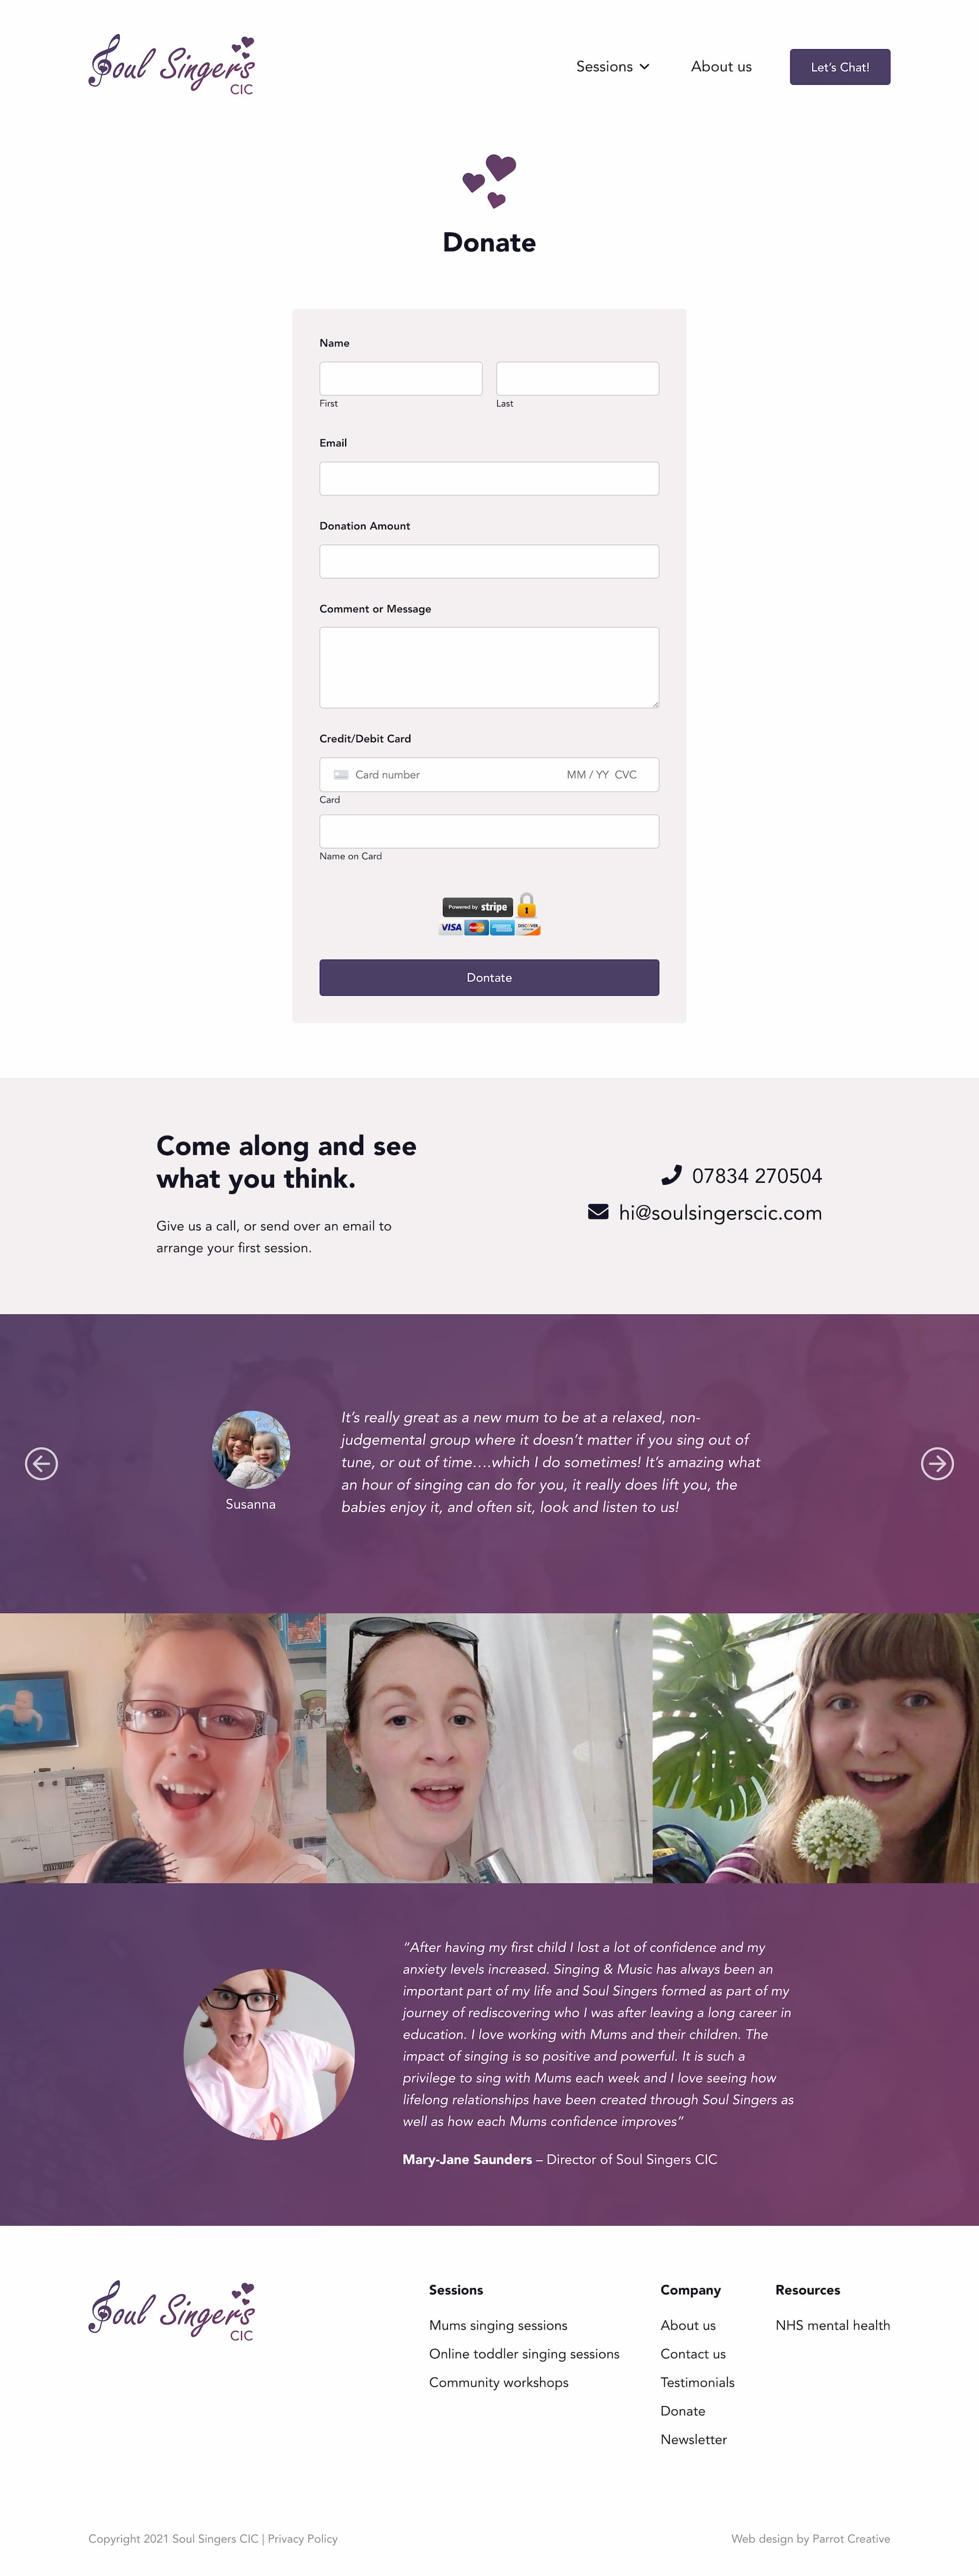 Singing group and choir donate page design